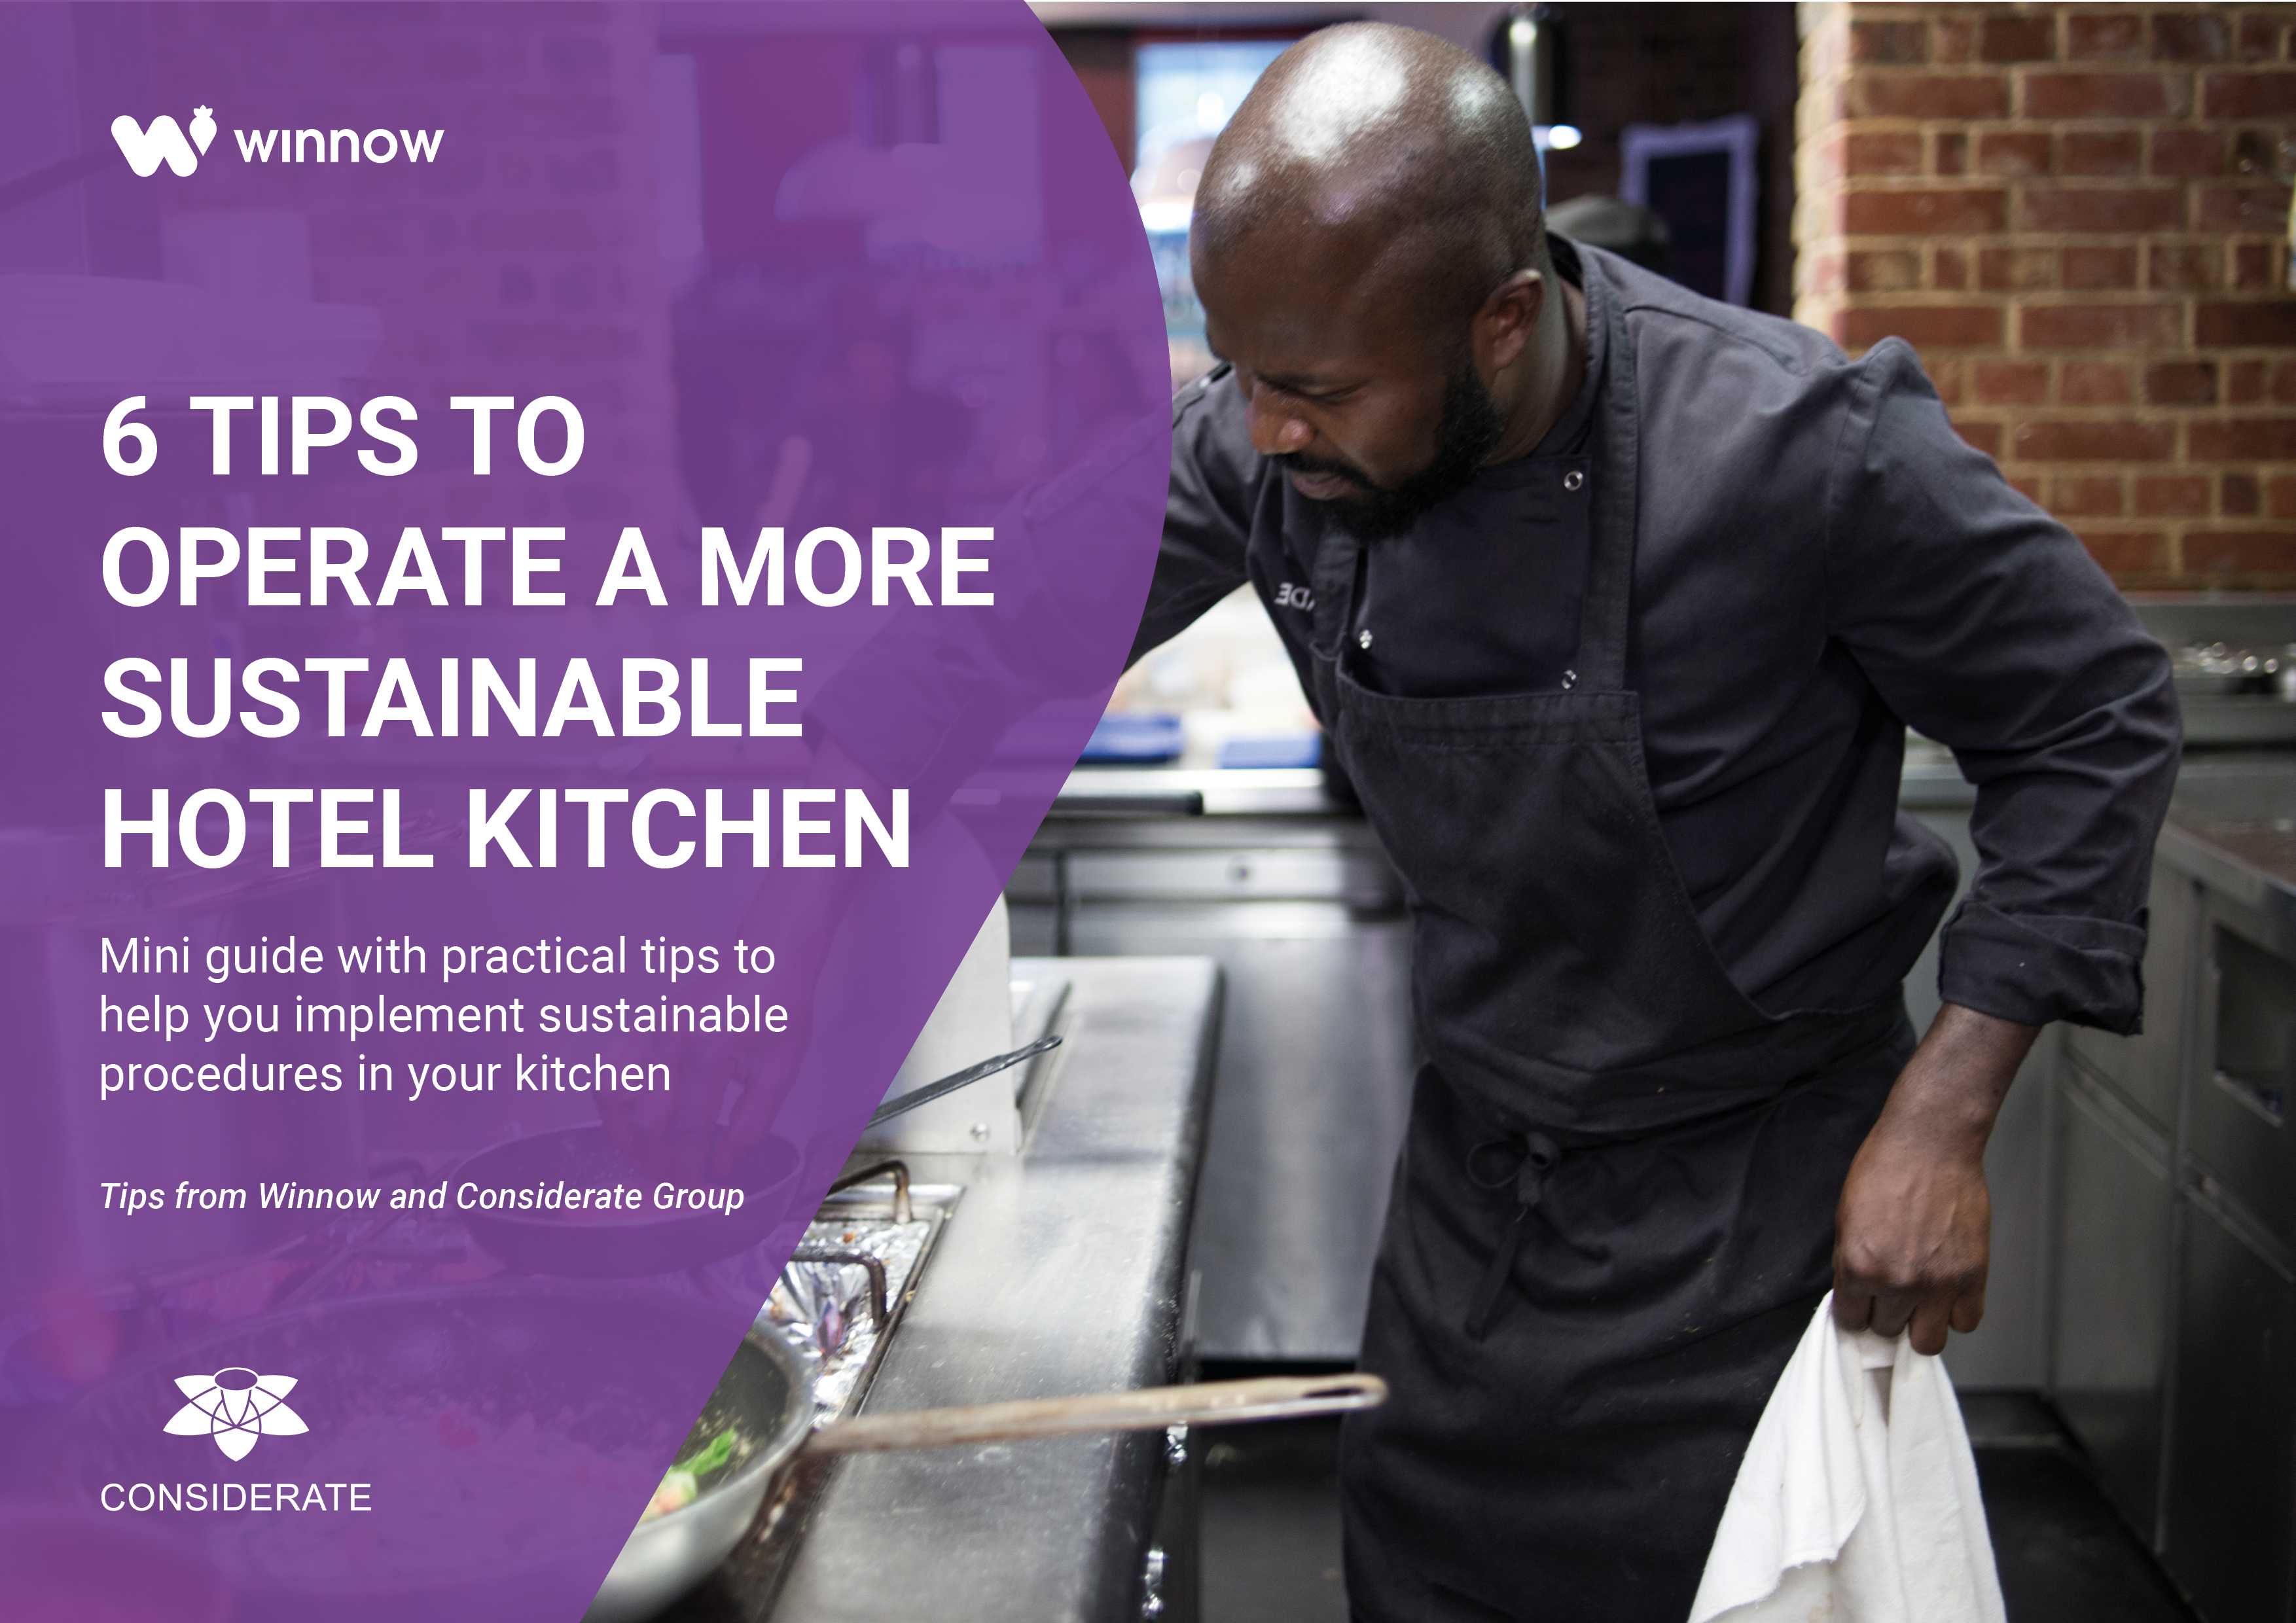 6 tips to operate a more sustainable kitchen